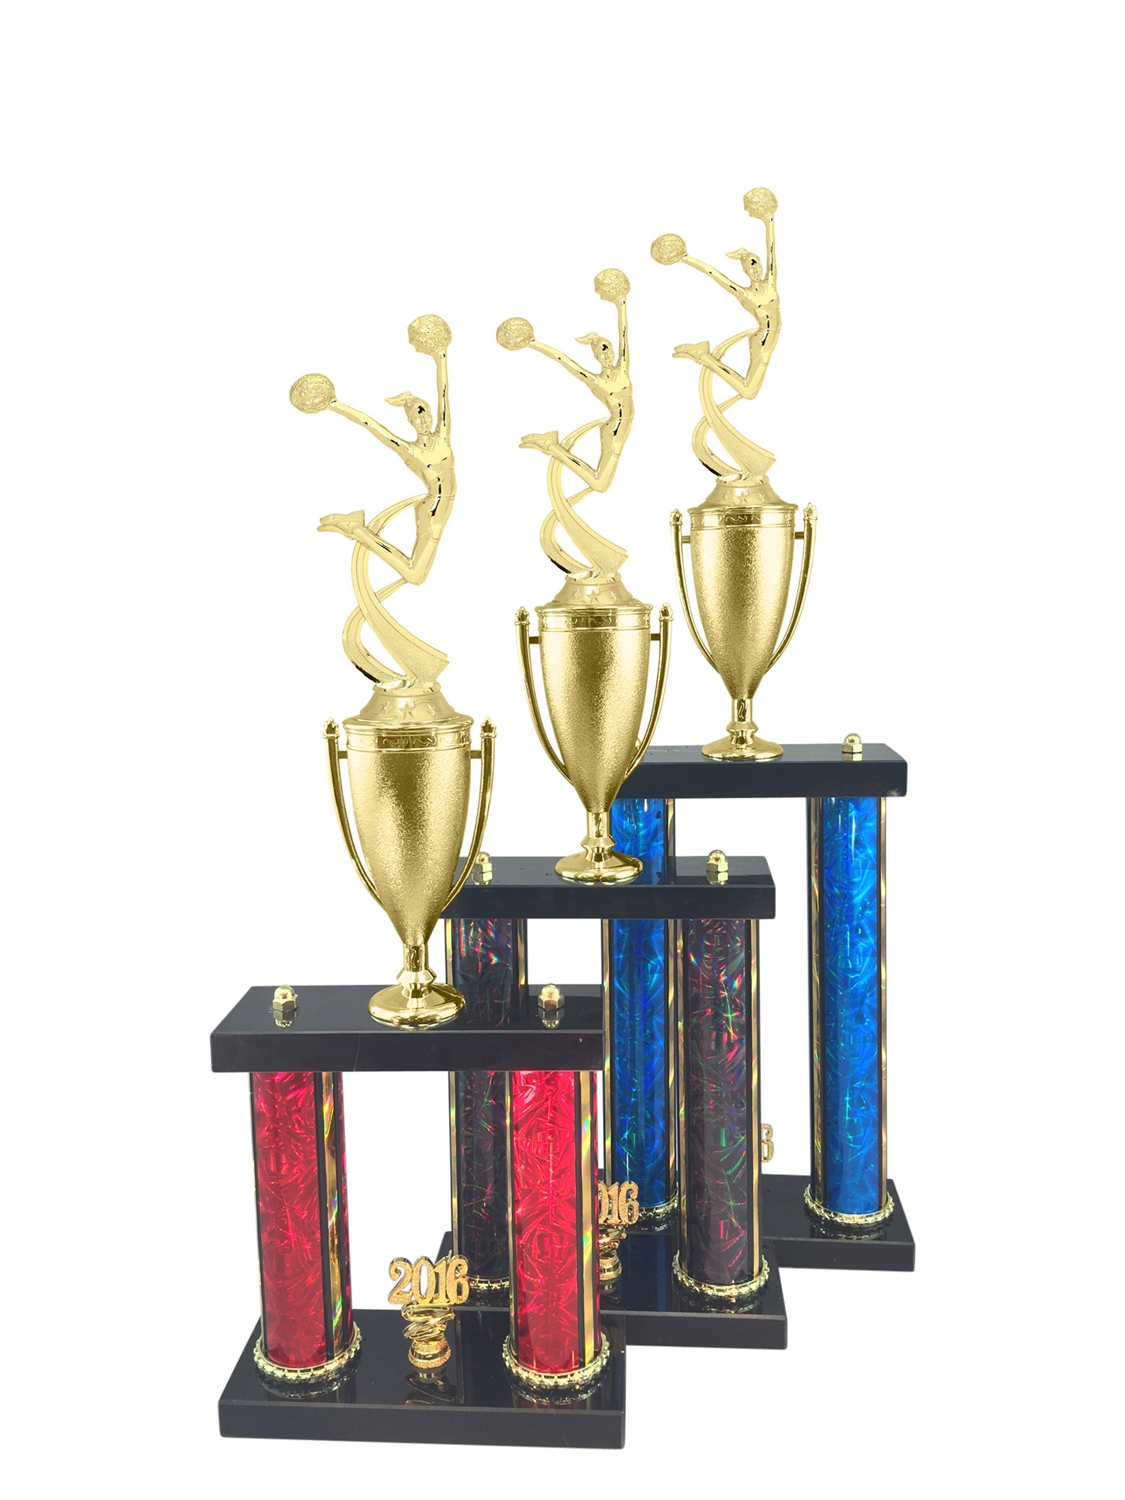 2 Post Cheerleading Trophy in 11 Color & 3 Size Options